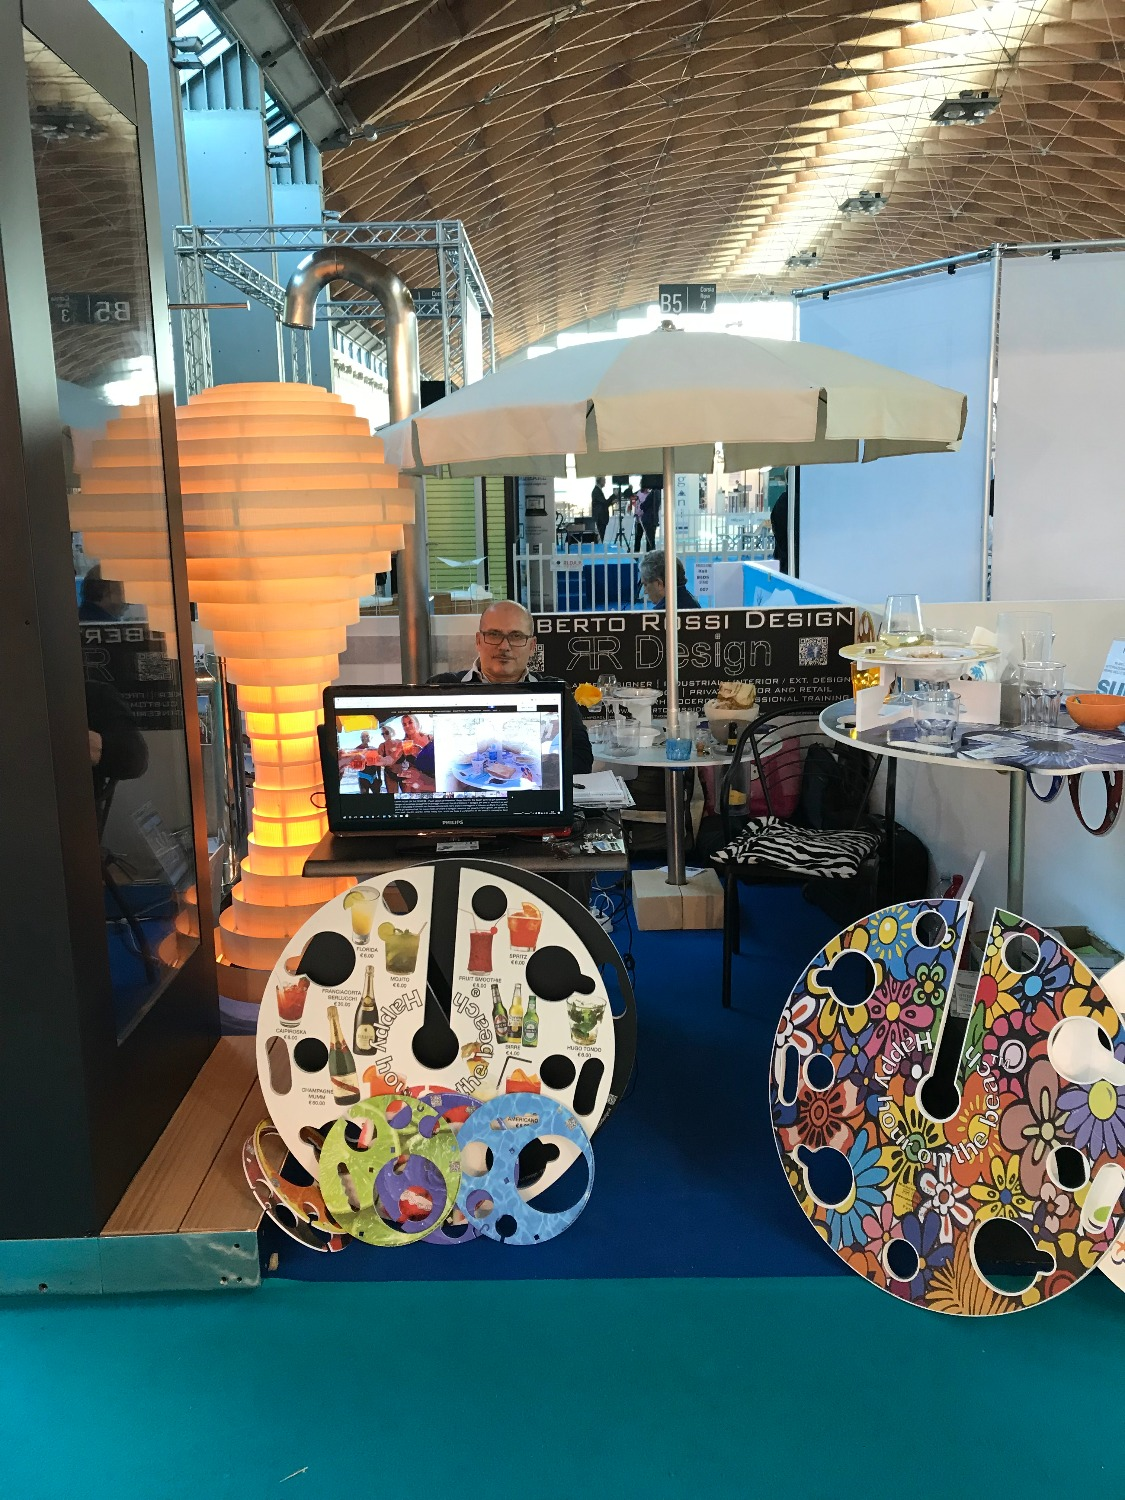 RRDESIGN al SUN in fiera Rimini 2017